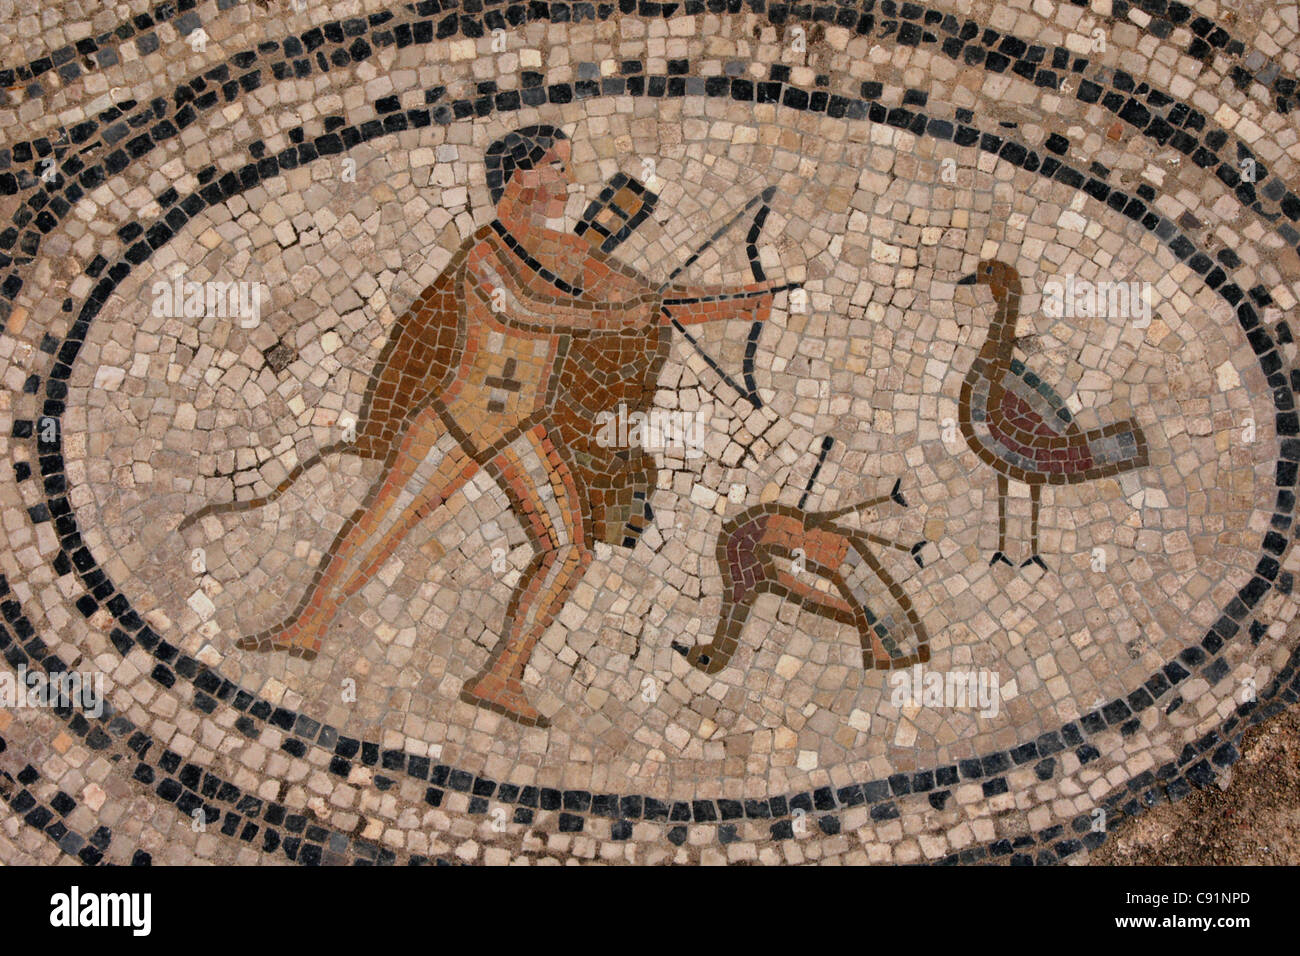 Hercules and the Stymphalian birds. Roman mosaic from the House of the Labors of Hercules in Volubilis, Morocco. Stock Photo